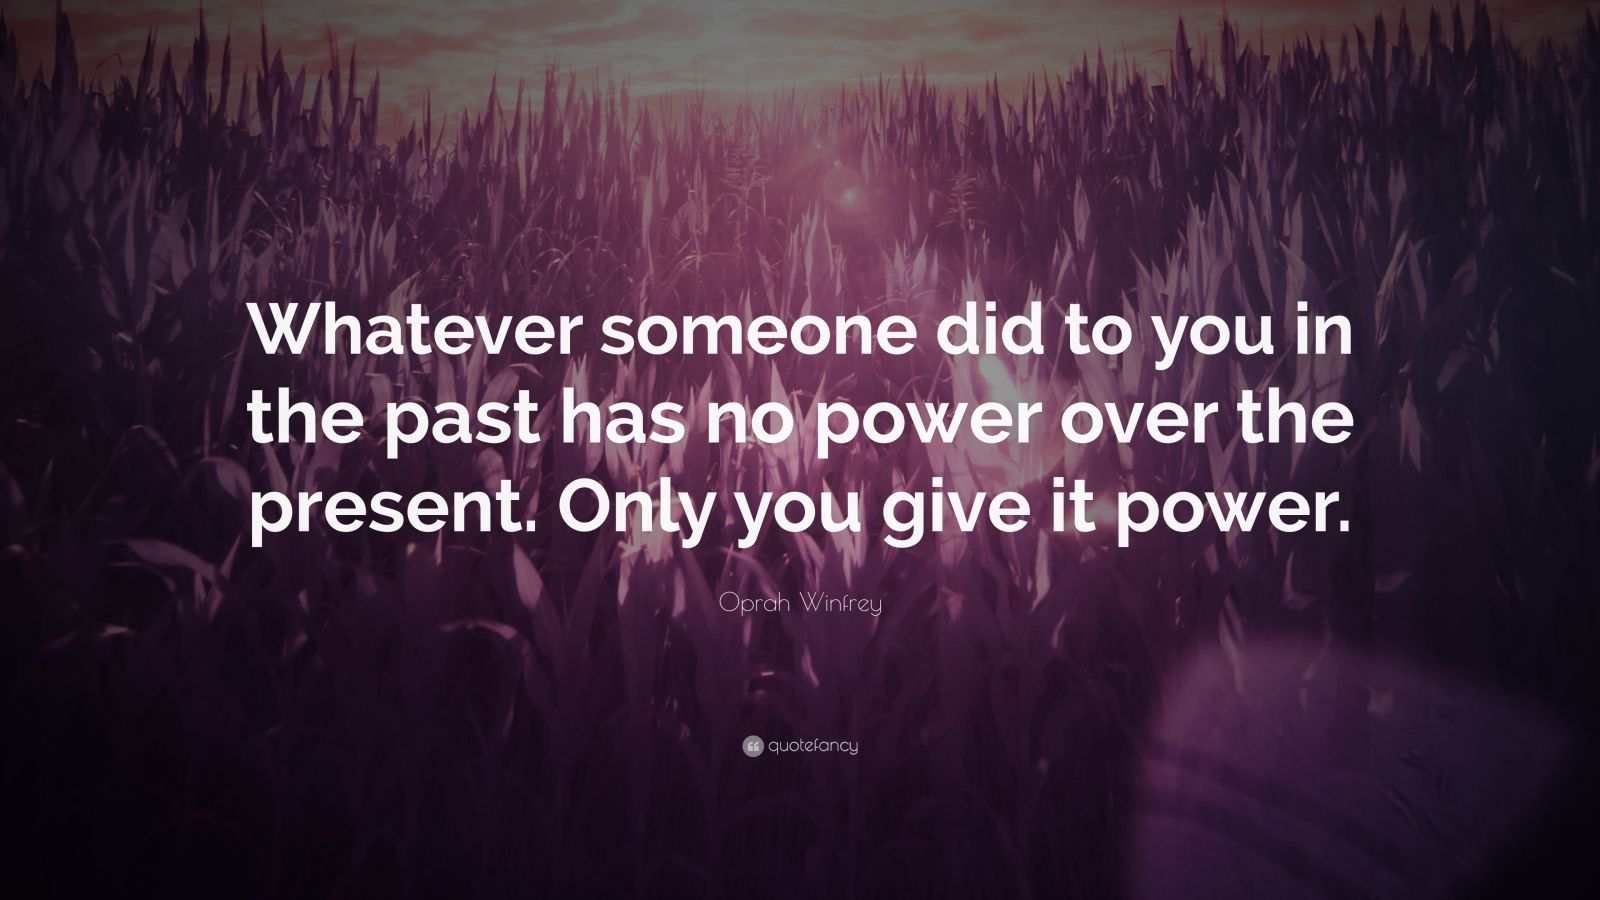 """Oprah Winfrey Quote: """"Whatever someone did to you in the past has no power over the present. Only you give it power."""""""